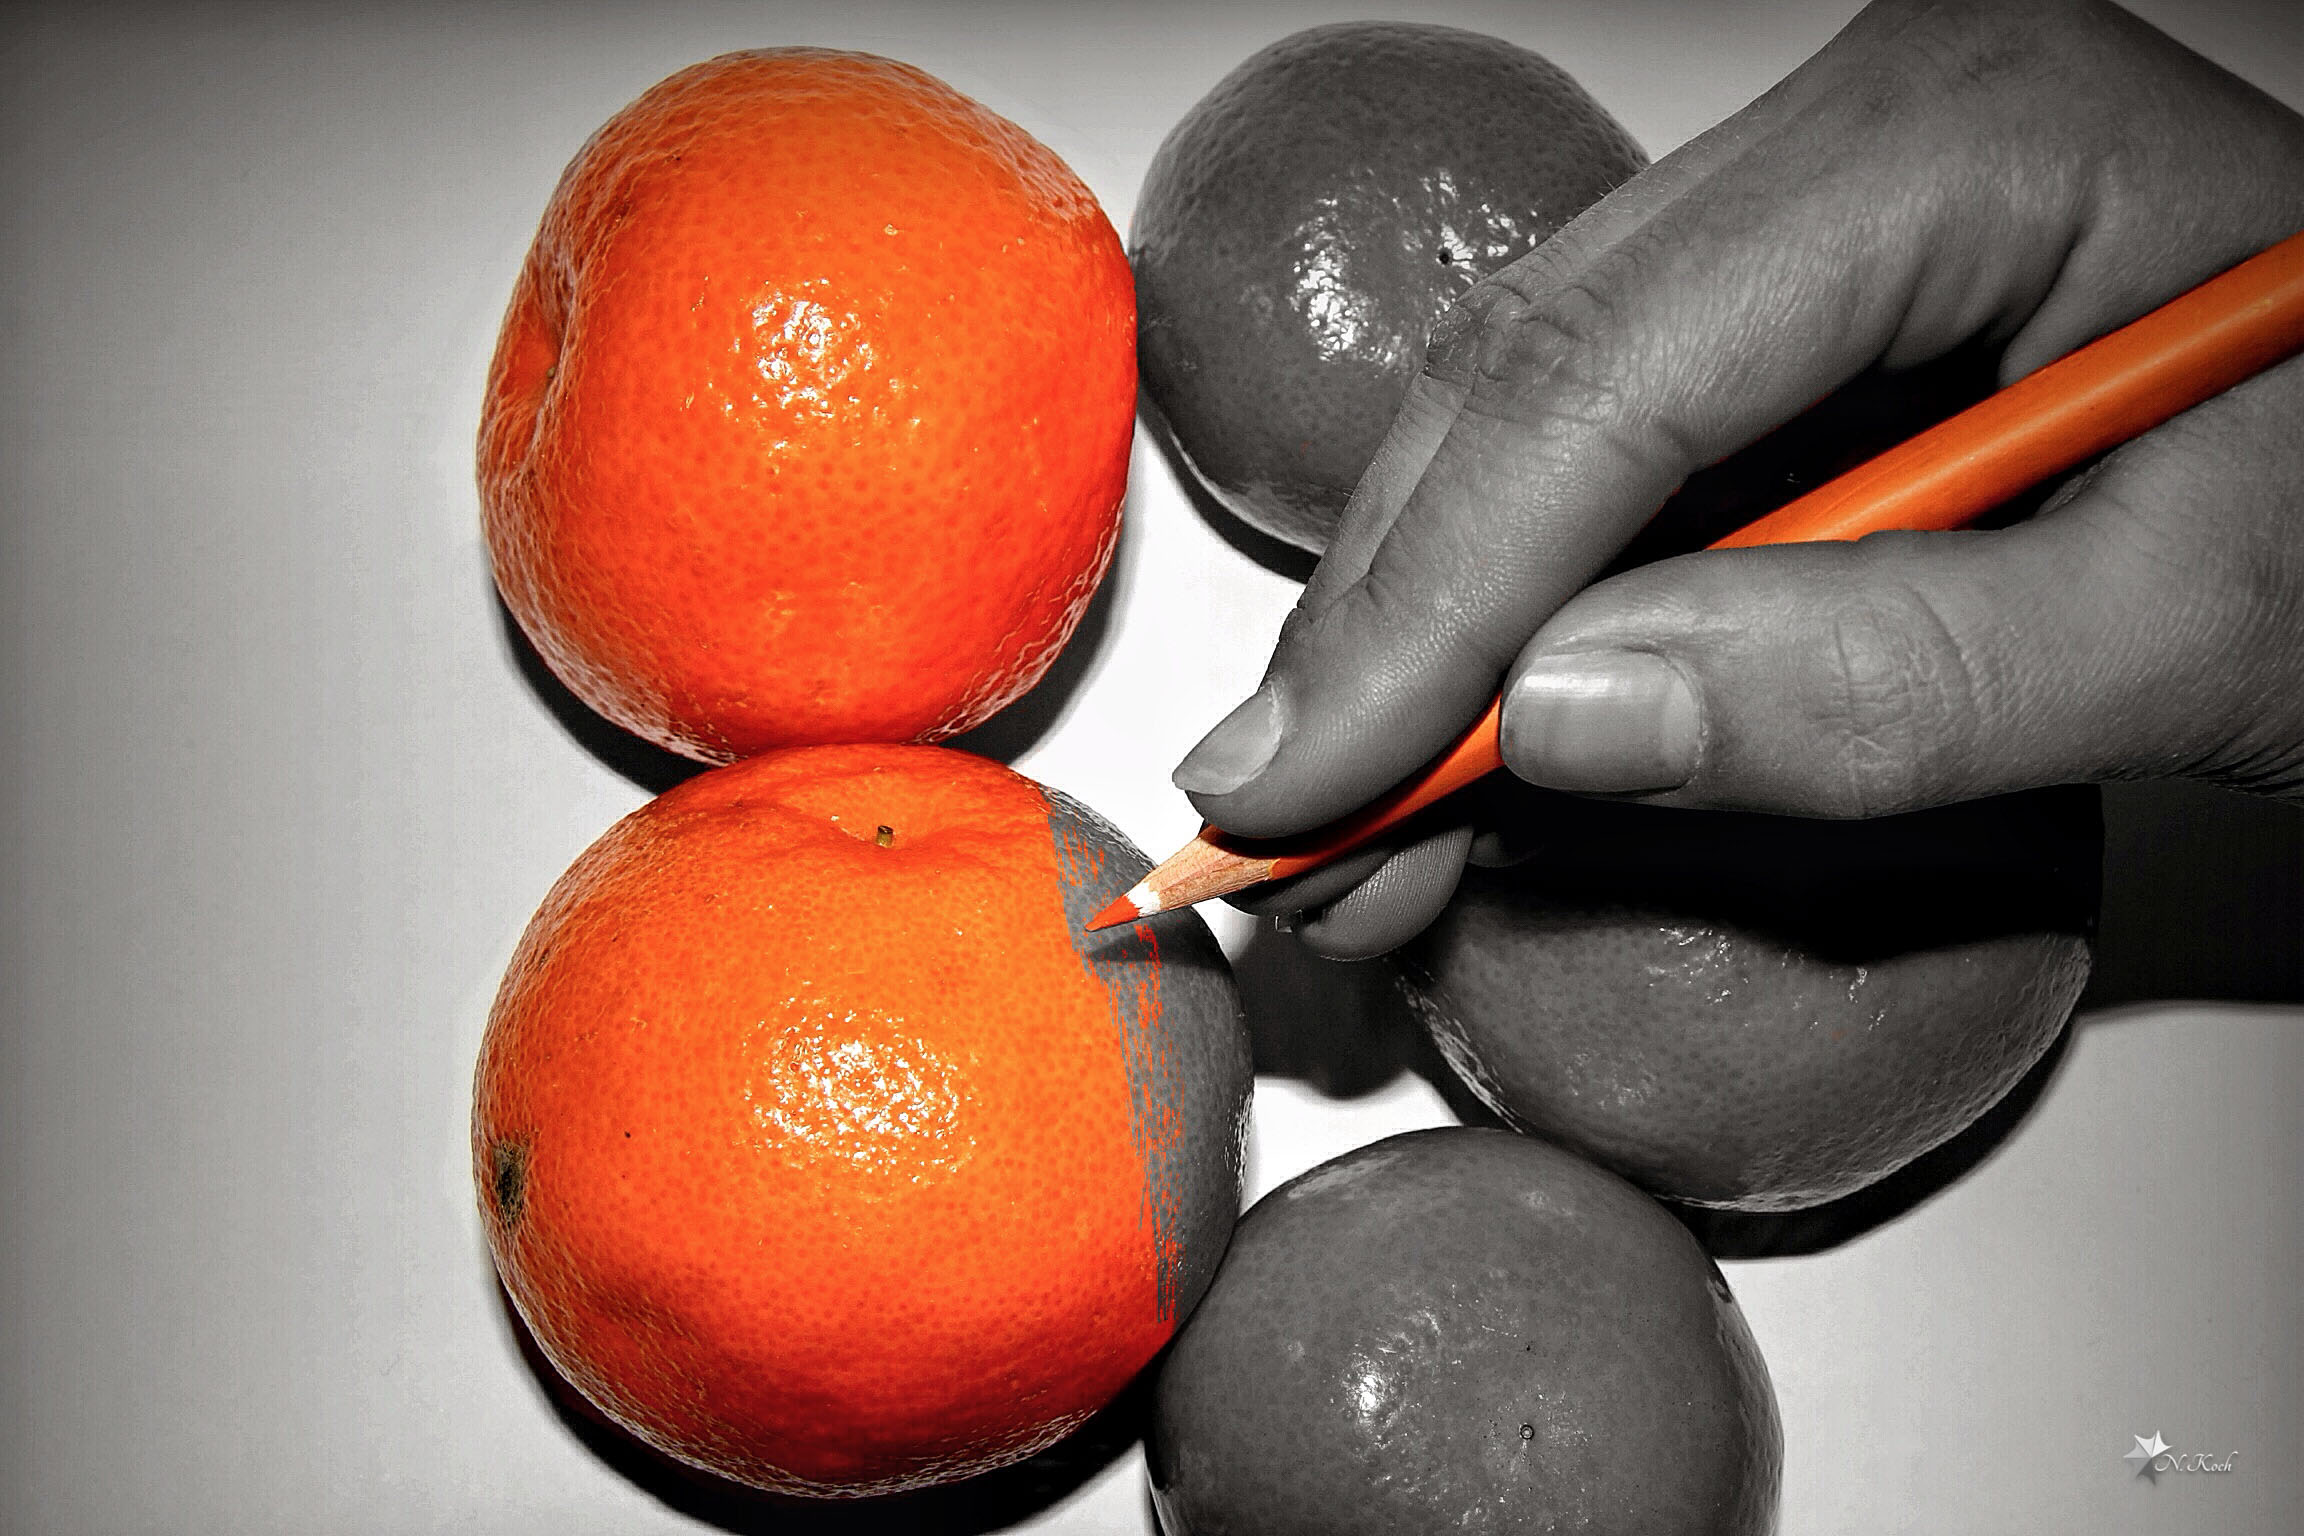 2014, Splash | Painting on the oranges